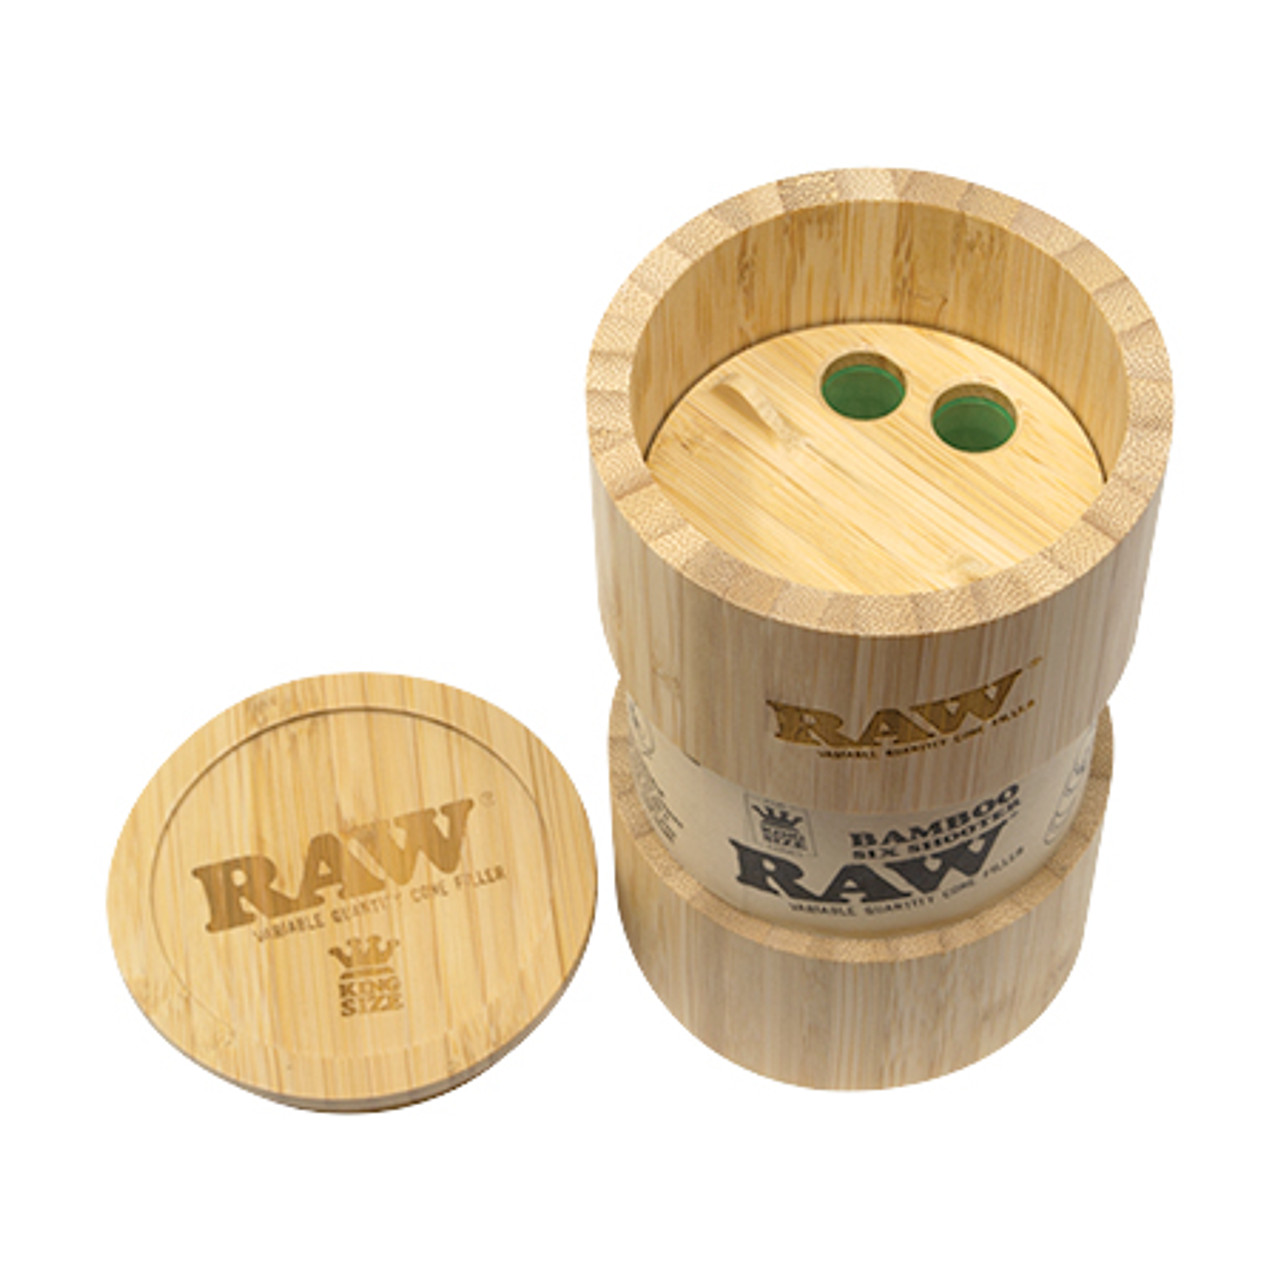 RAW Bamboo Six Shooter Cone Filler King Size